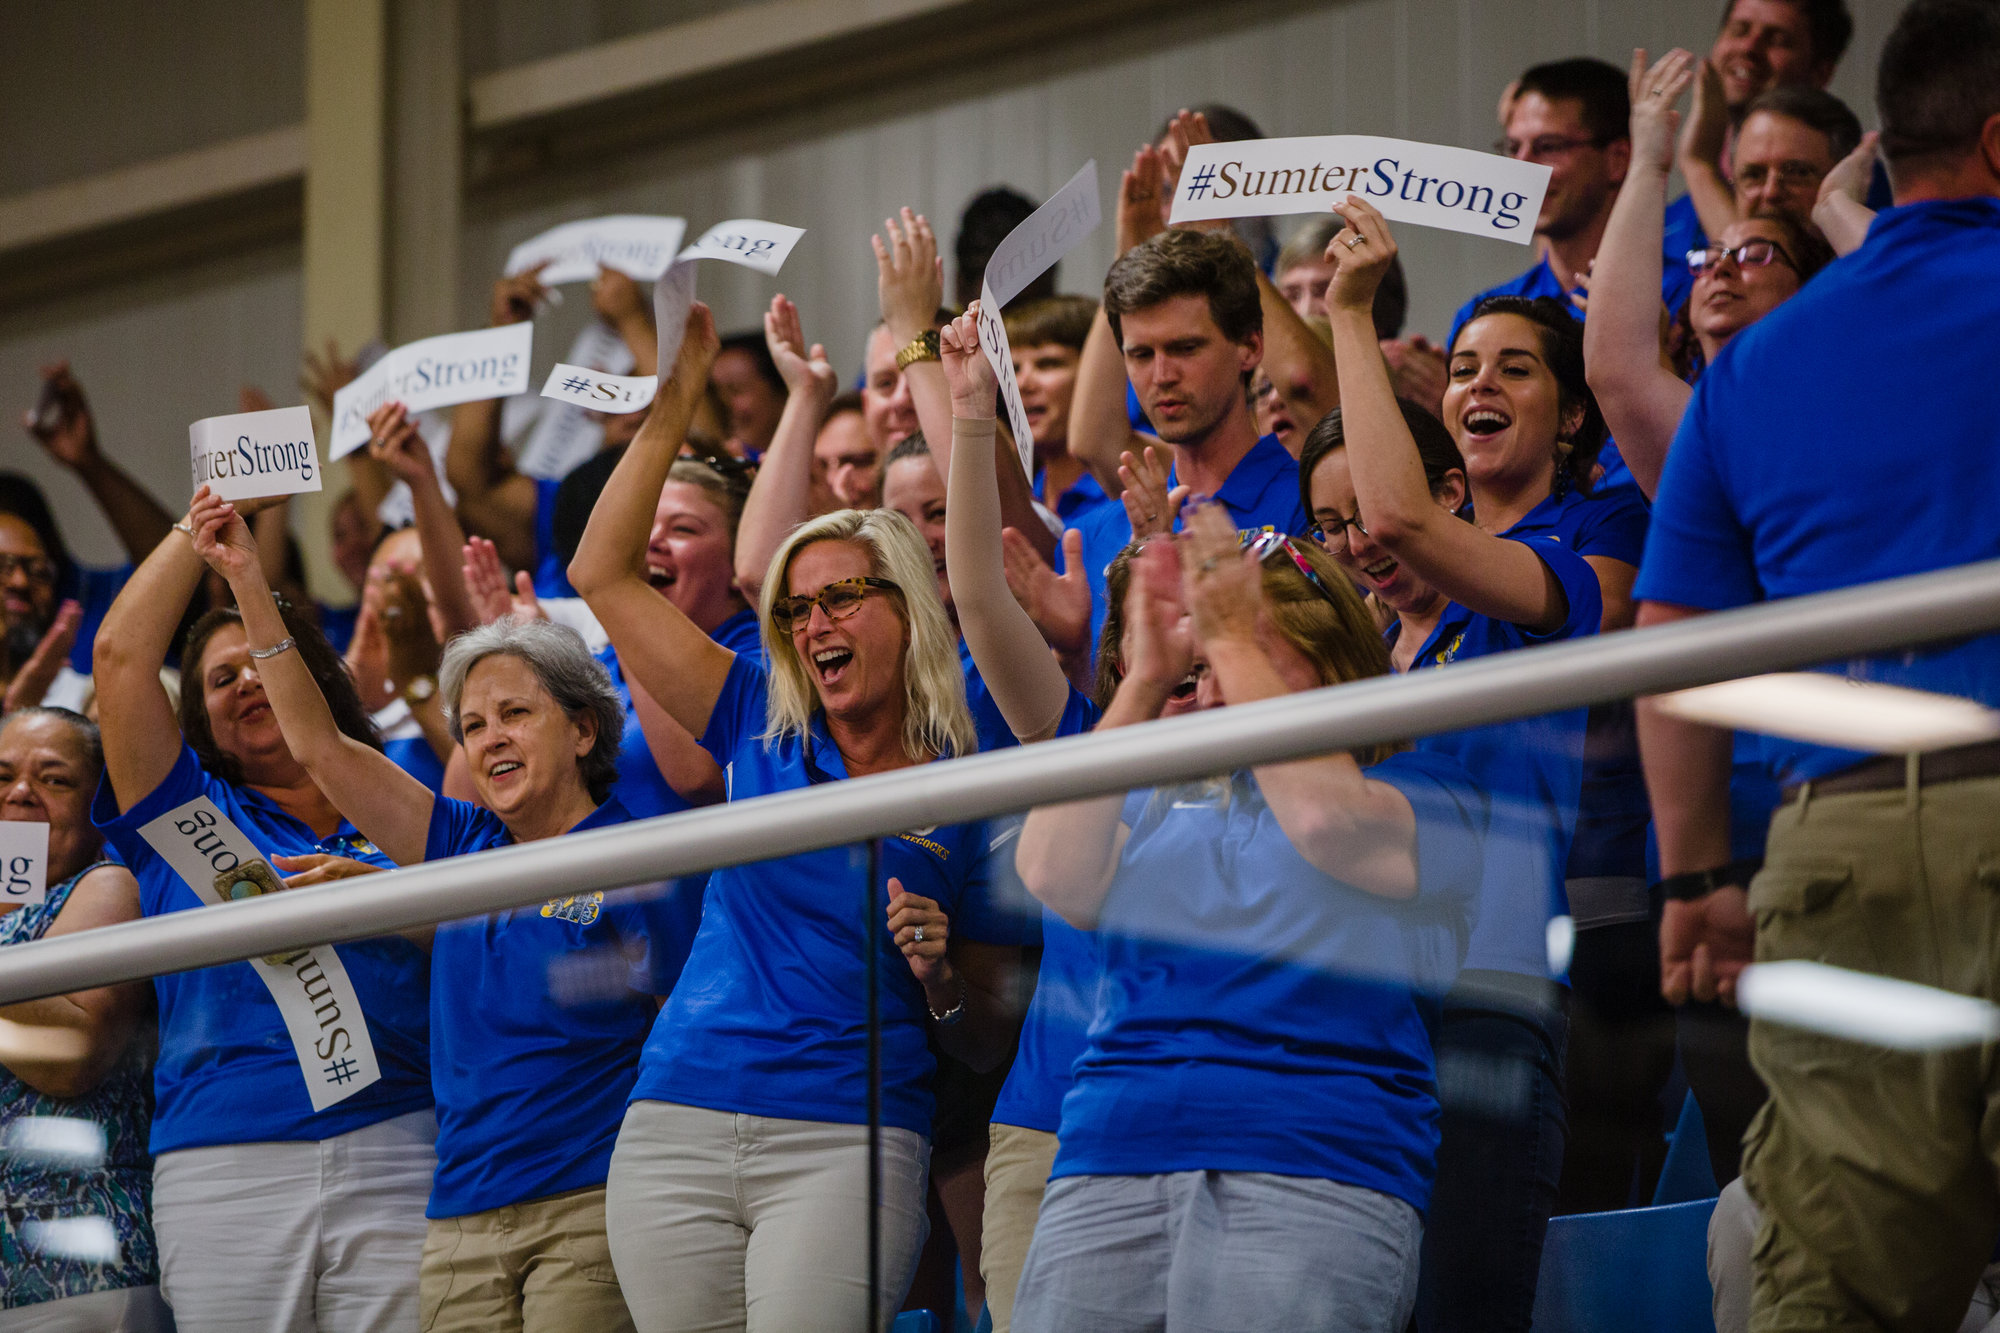 PHOTOS BY MICAH GREEN / THE SUMTER ITEM